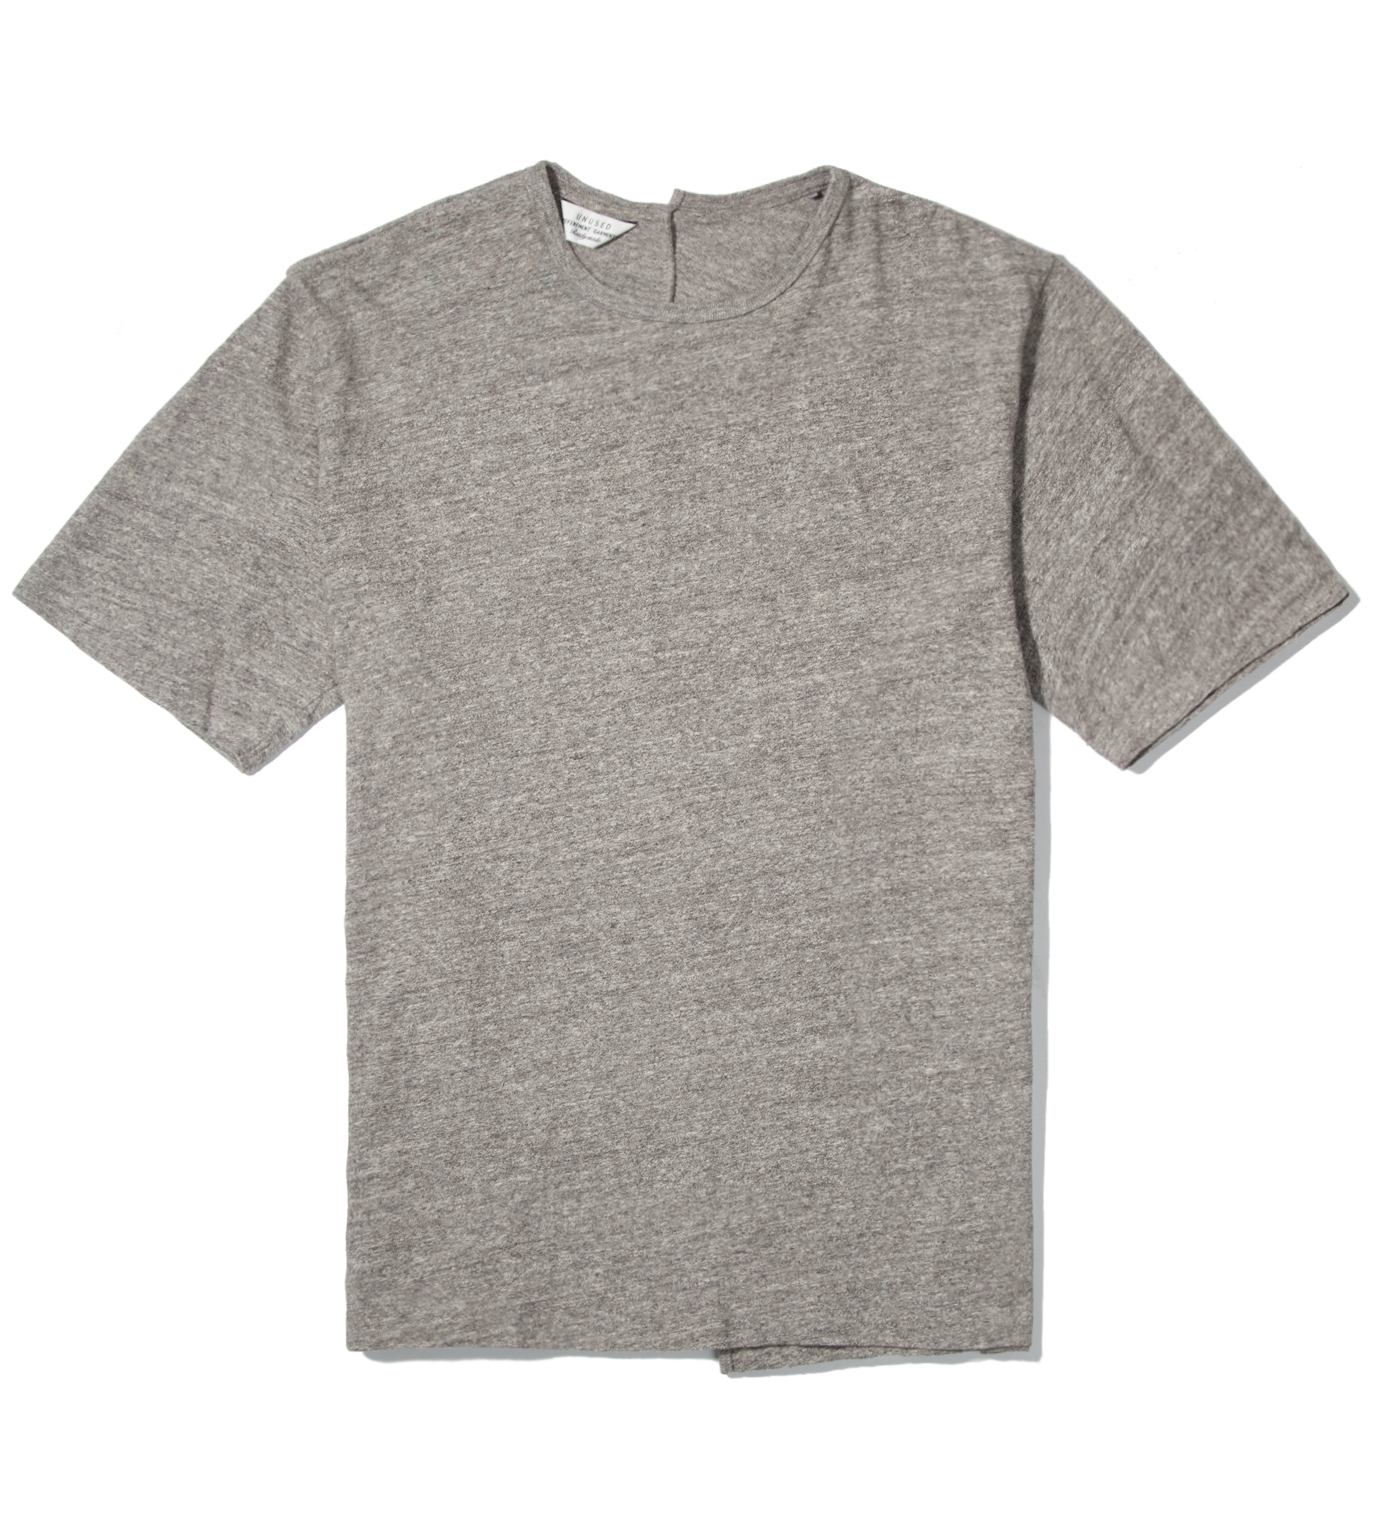 UNUSED Heather Grey T-Shirt